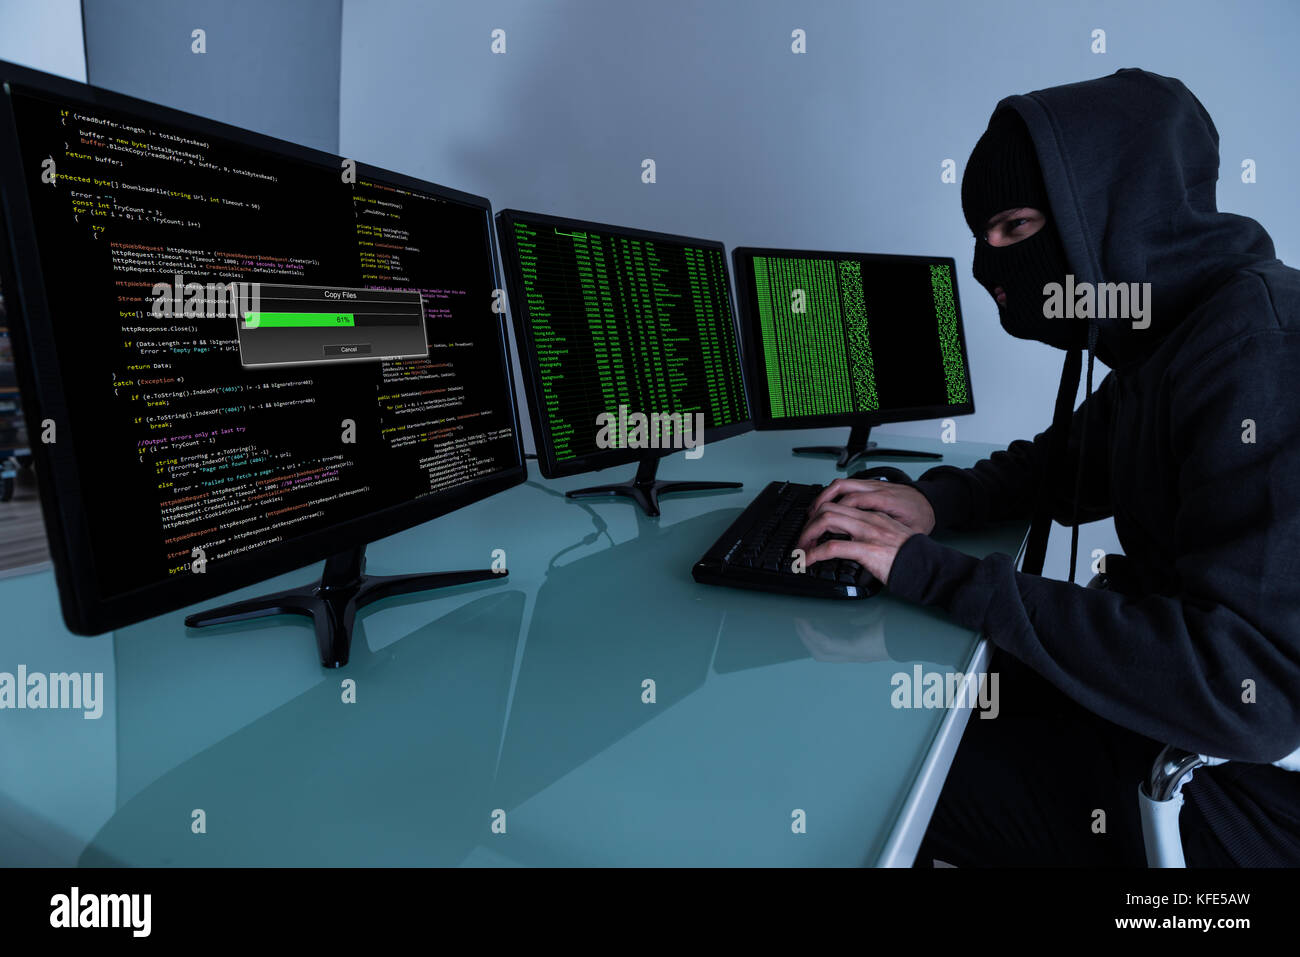 What is Hacking - Definition from Techopedia